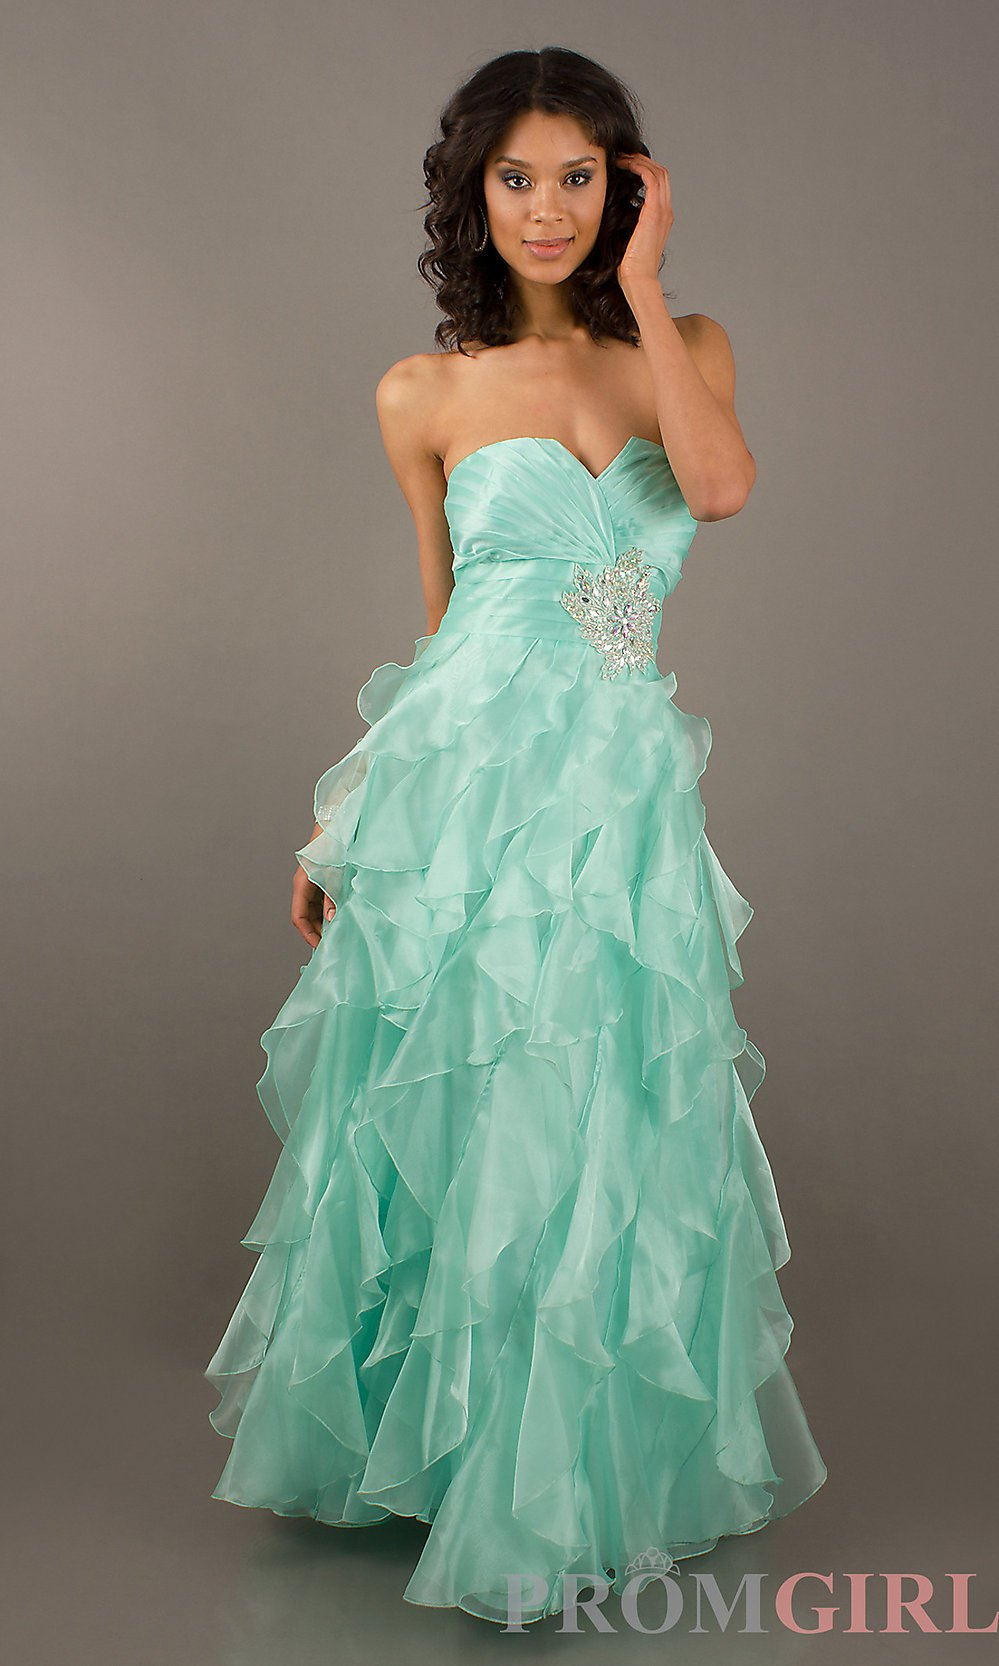 Clearance Prom Dresses 2014 | Dress images